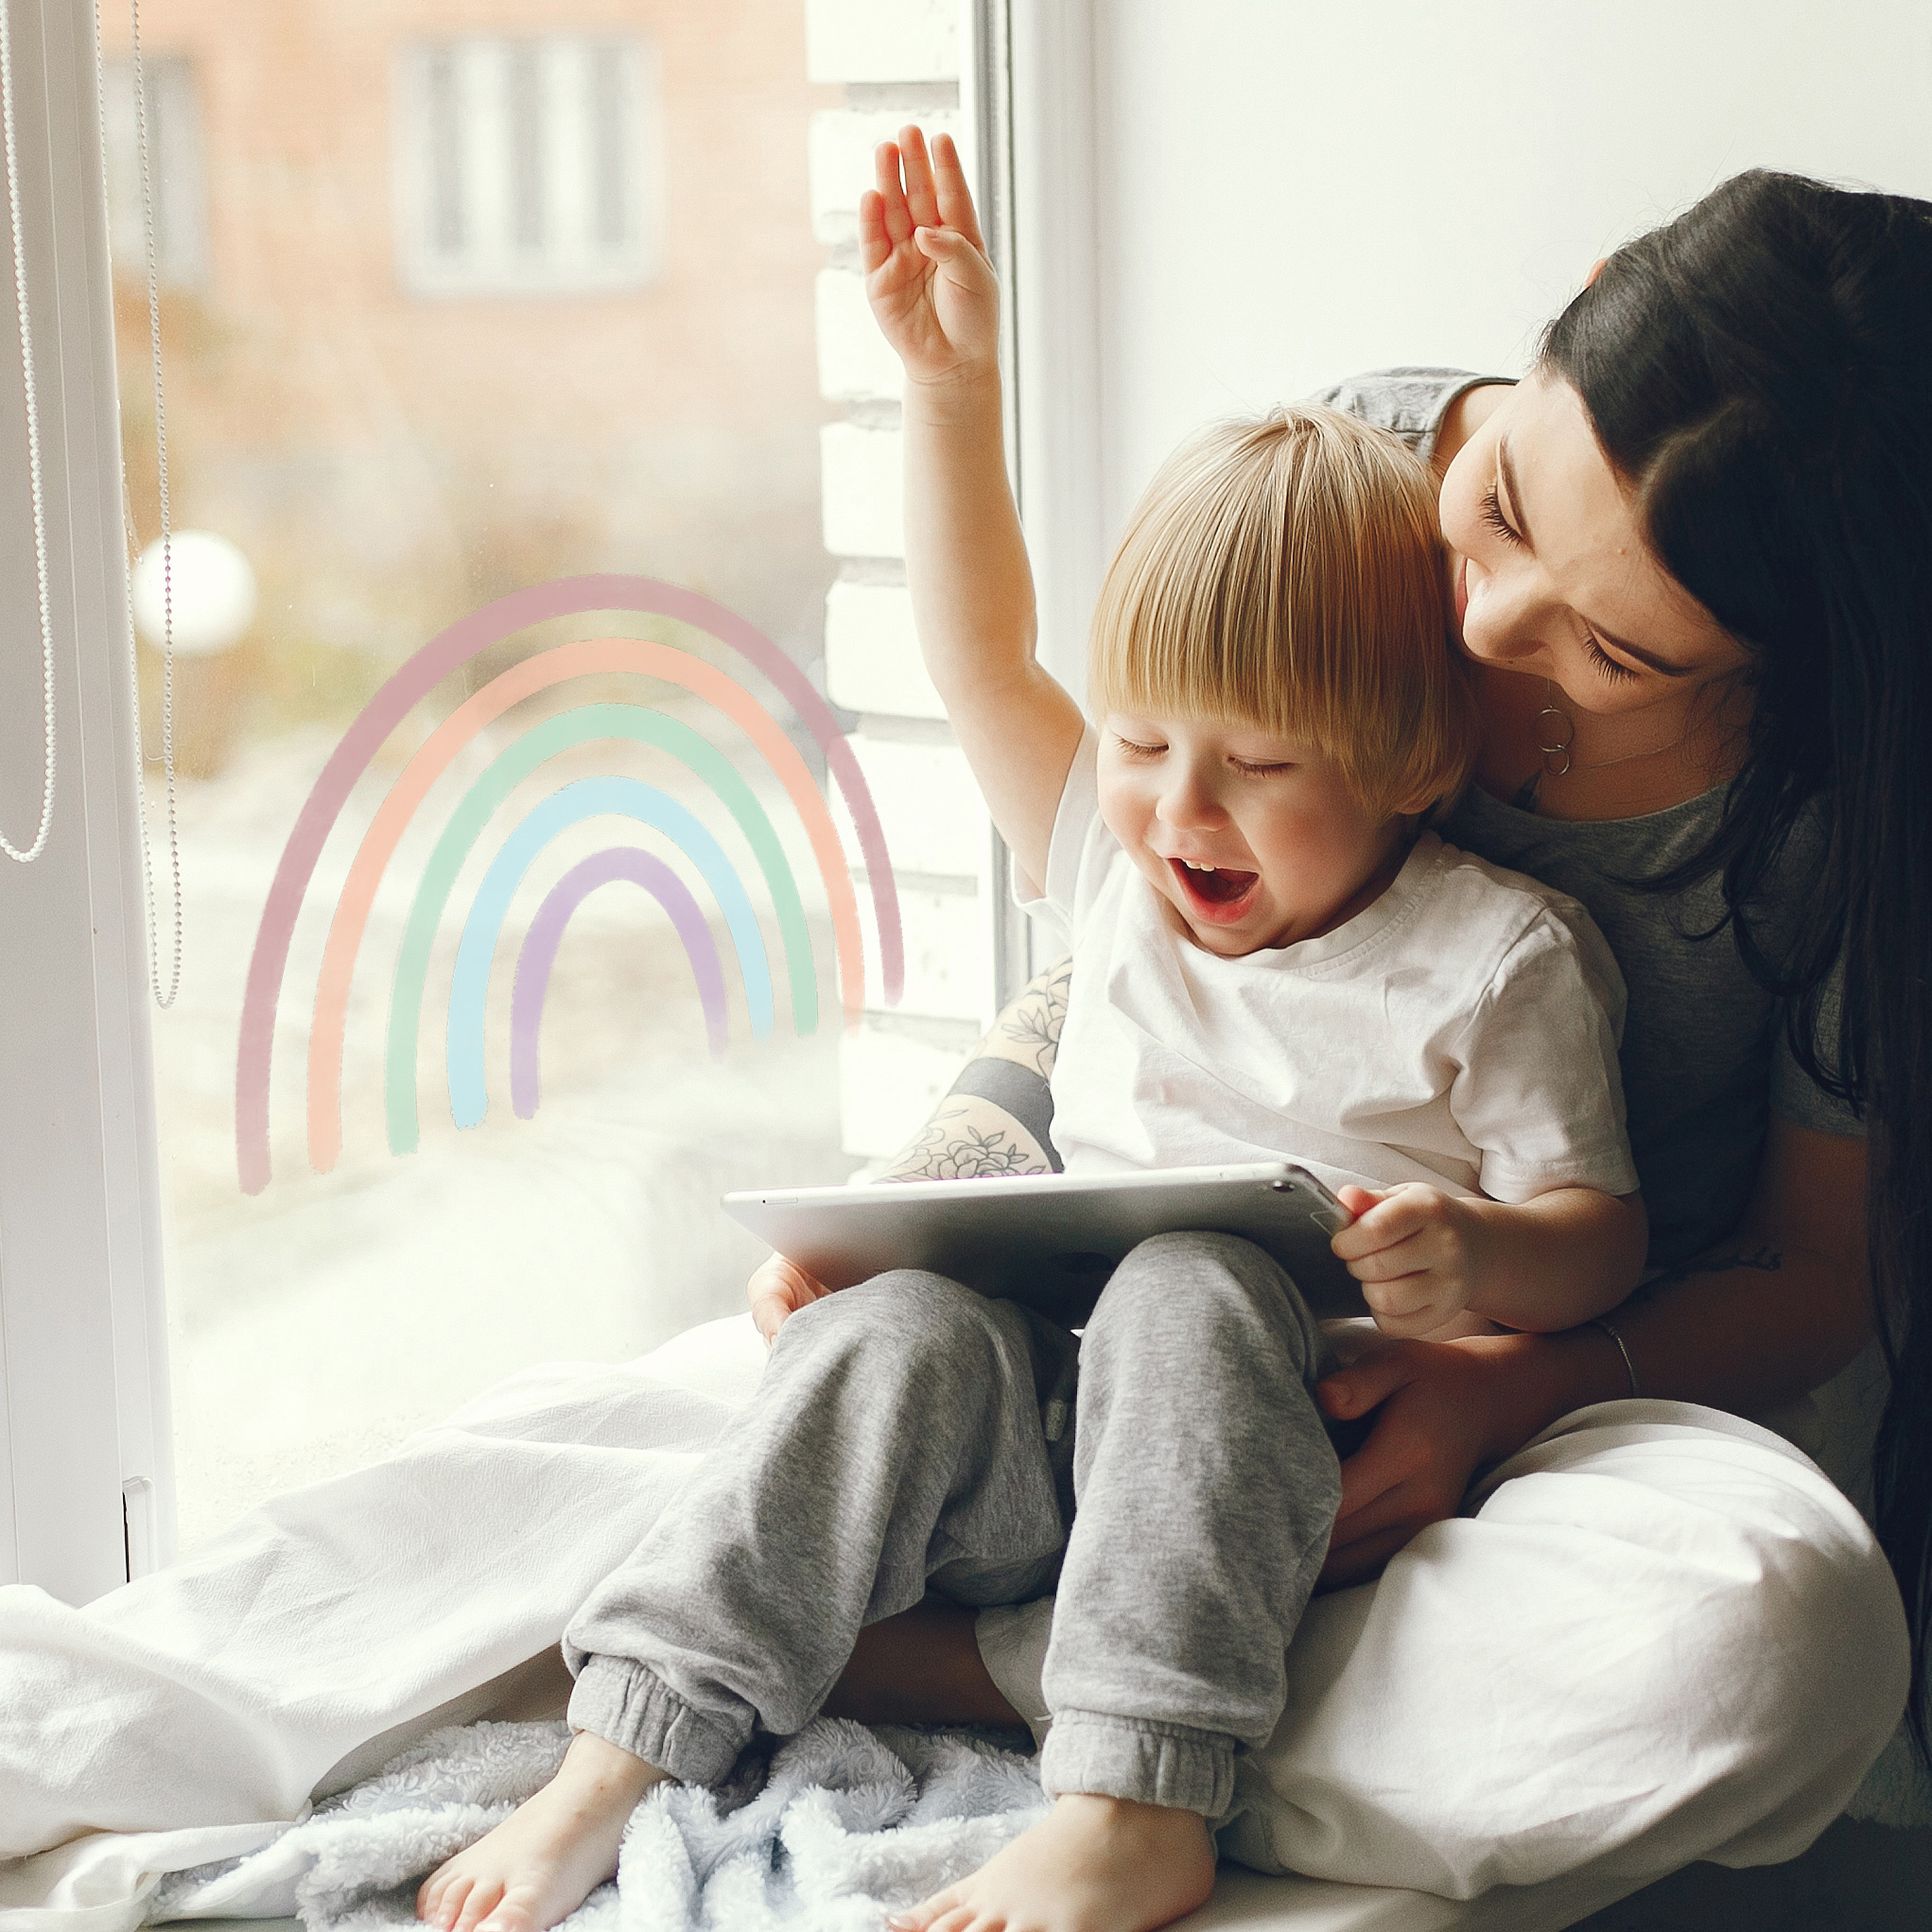 Beautiful woman with child. Woman in a gray t-shirt. Family sitting on a windowsill.